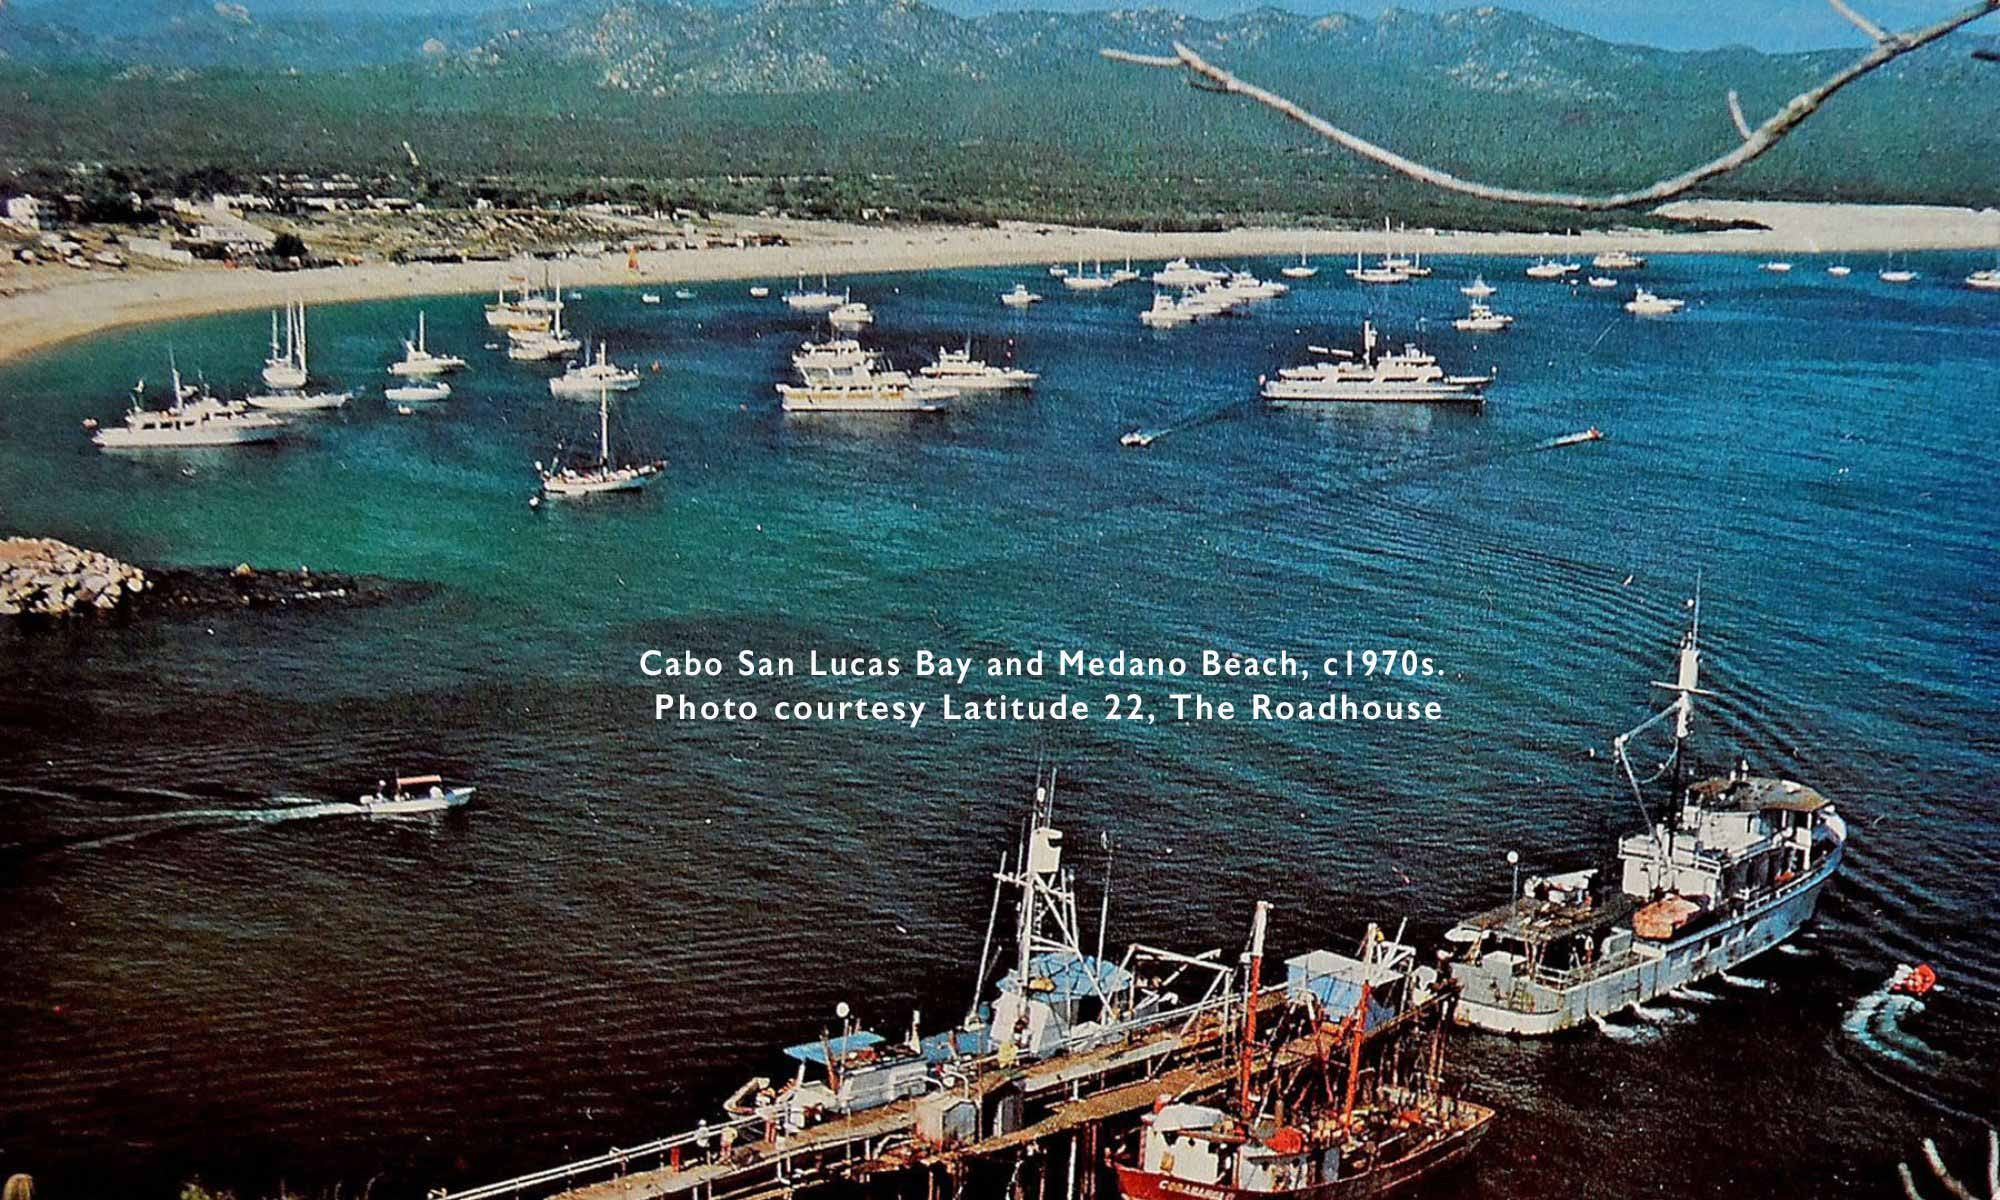 cabo-san-lucas-bay-c1970s-photo-latitude-22